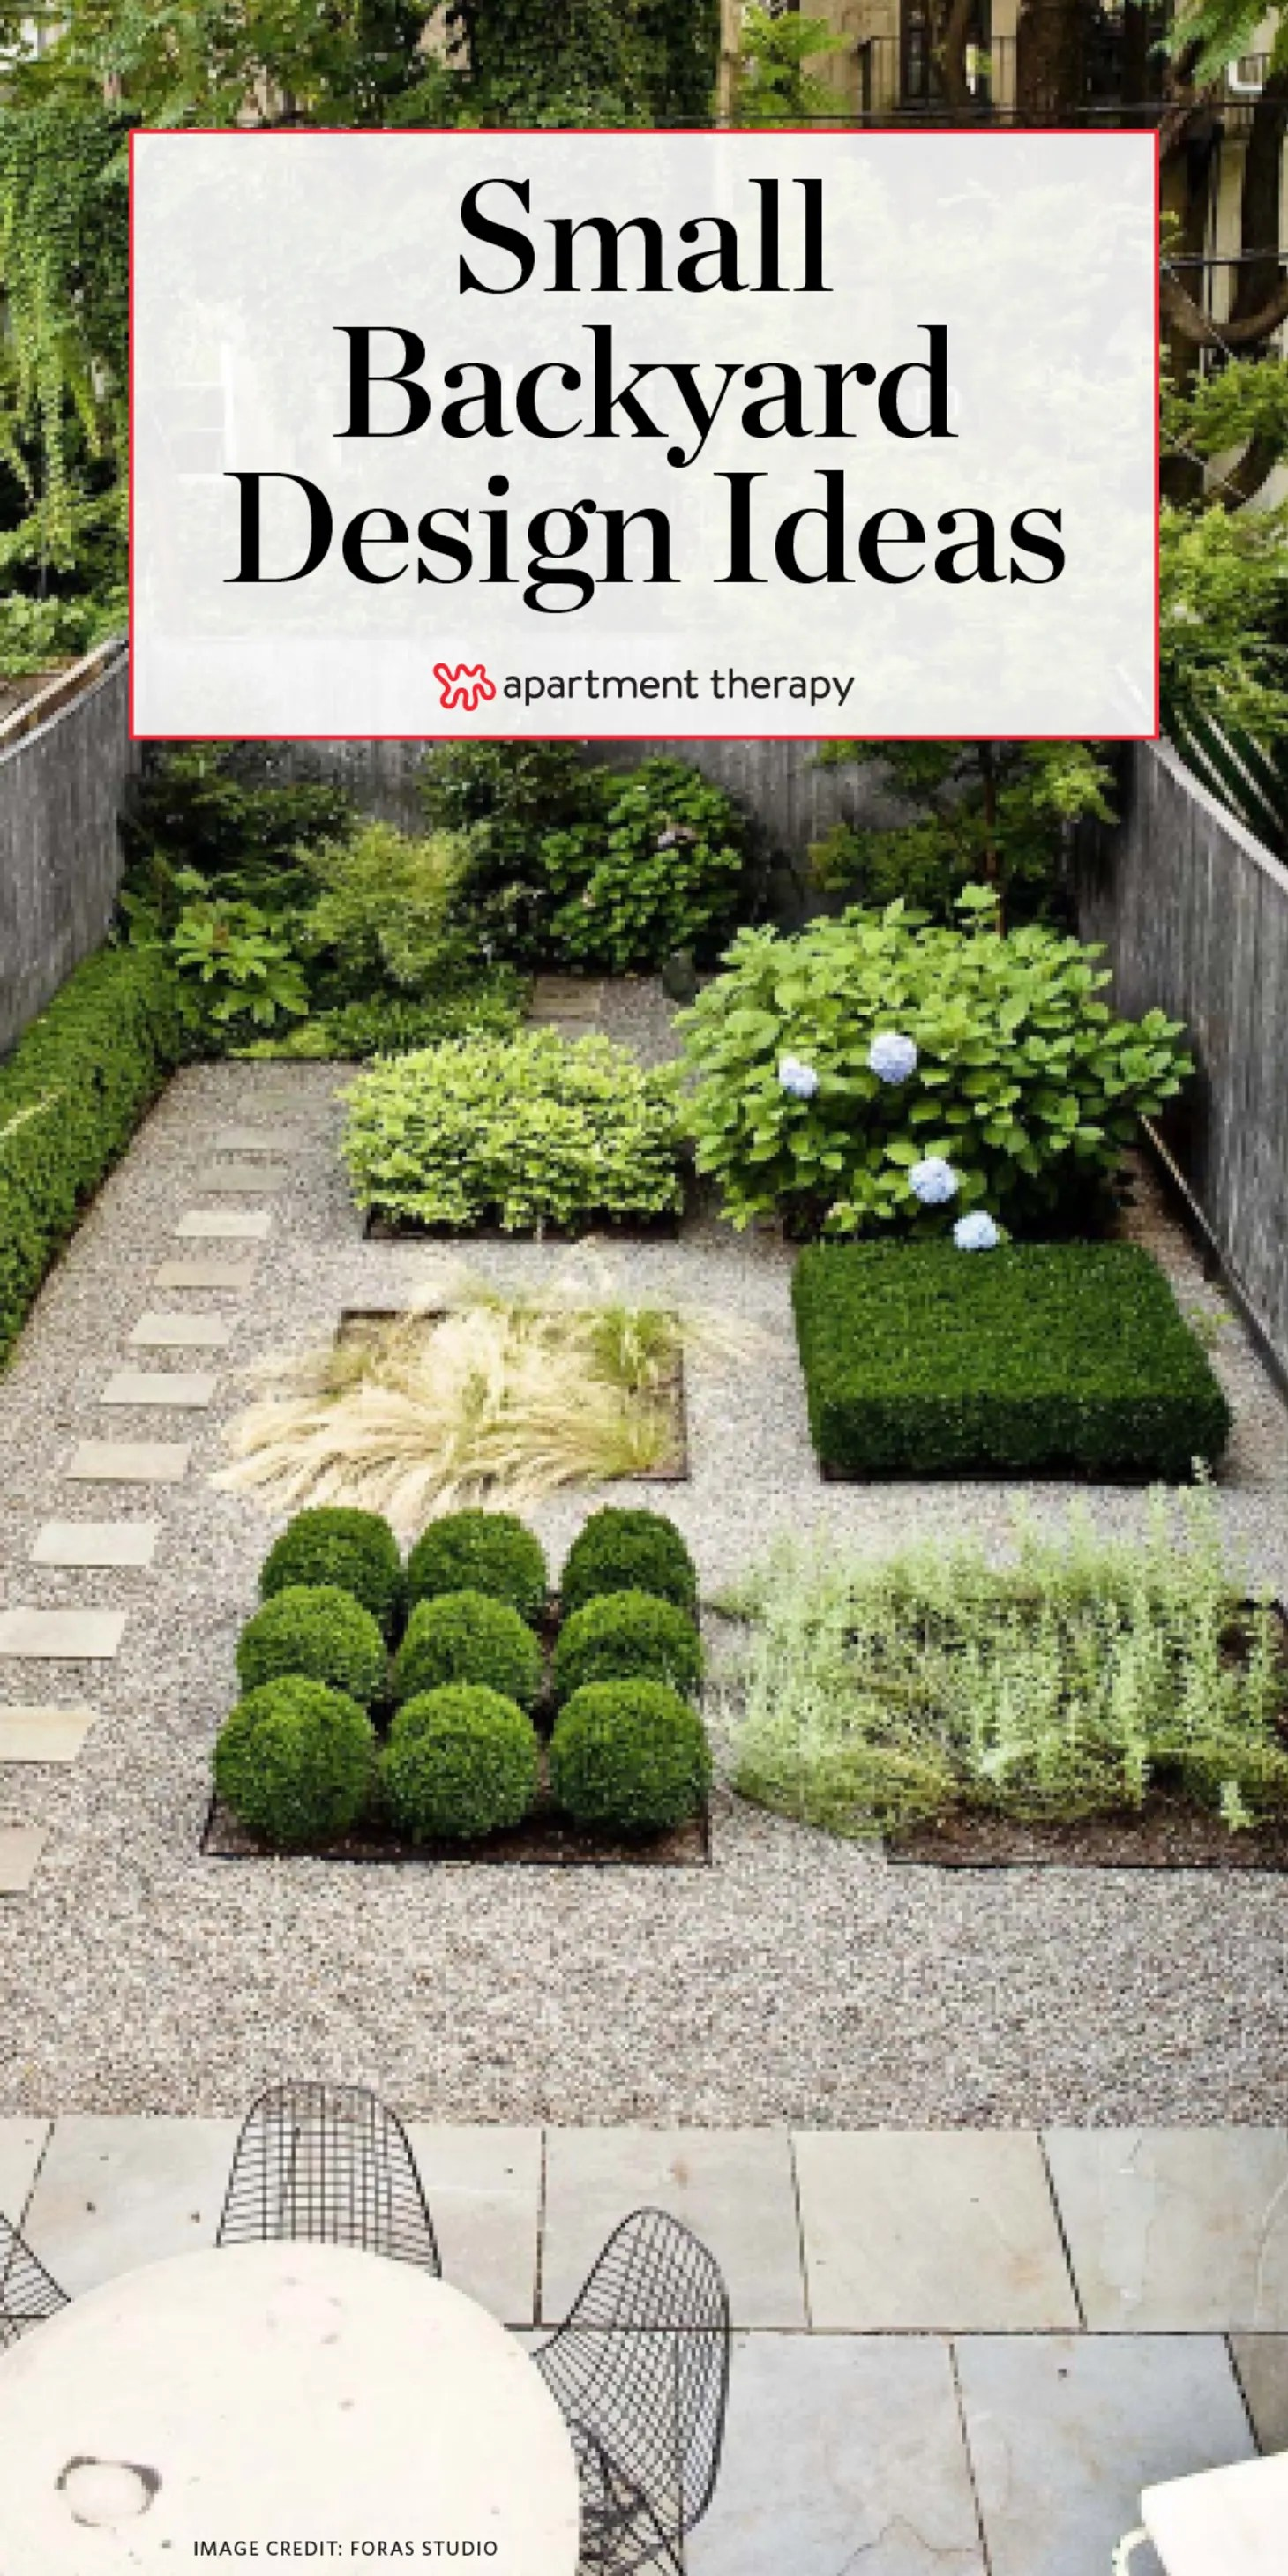 Small Backyard Design Ideas Inspiration Apartment Therapy